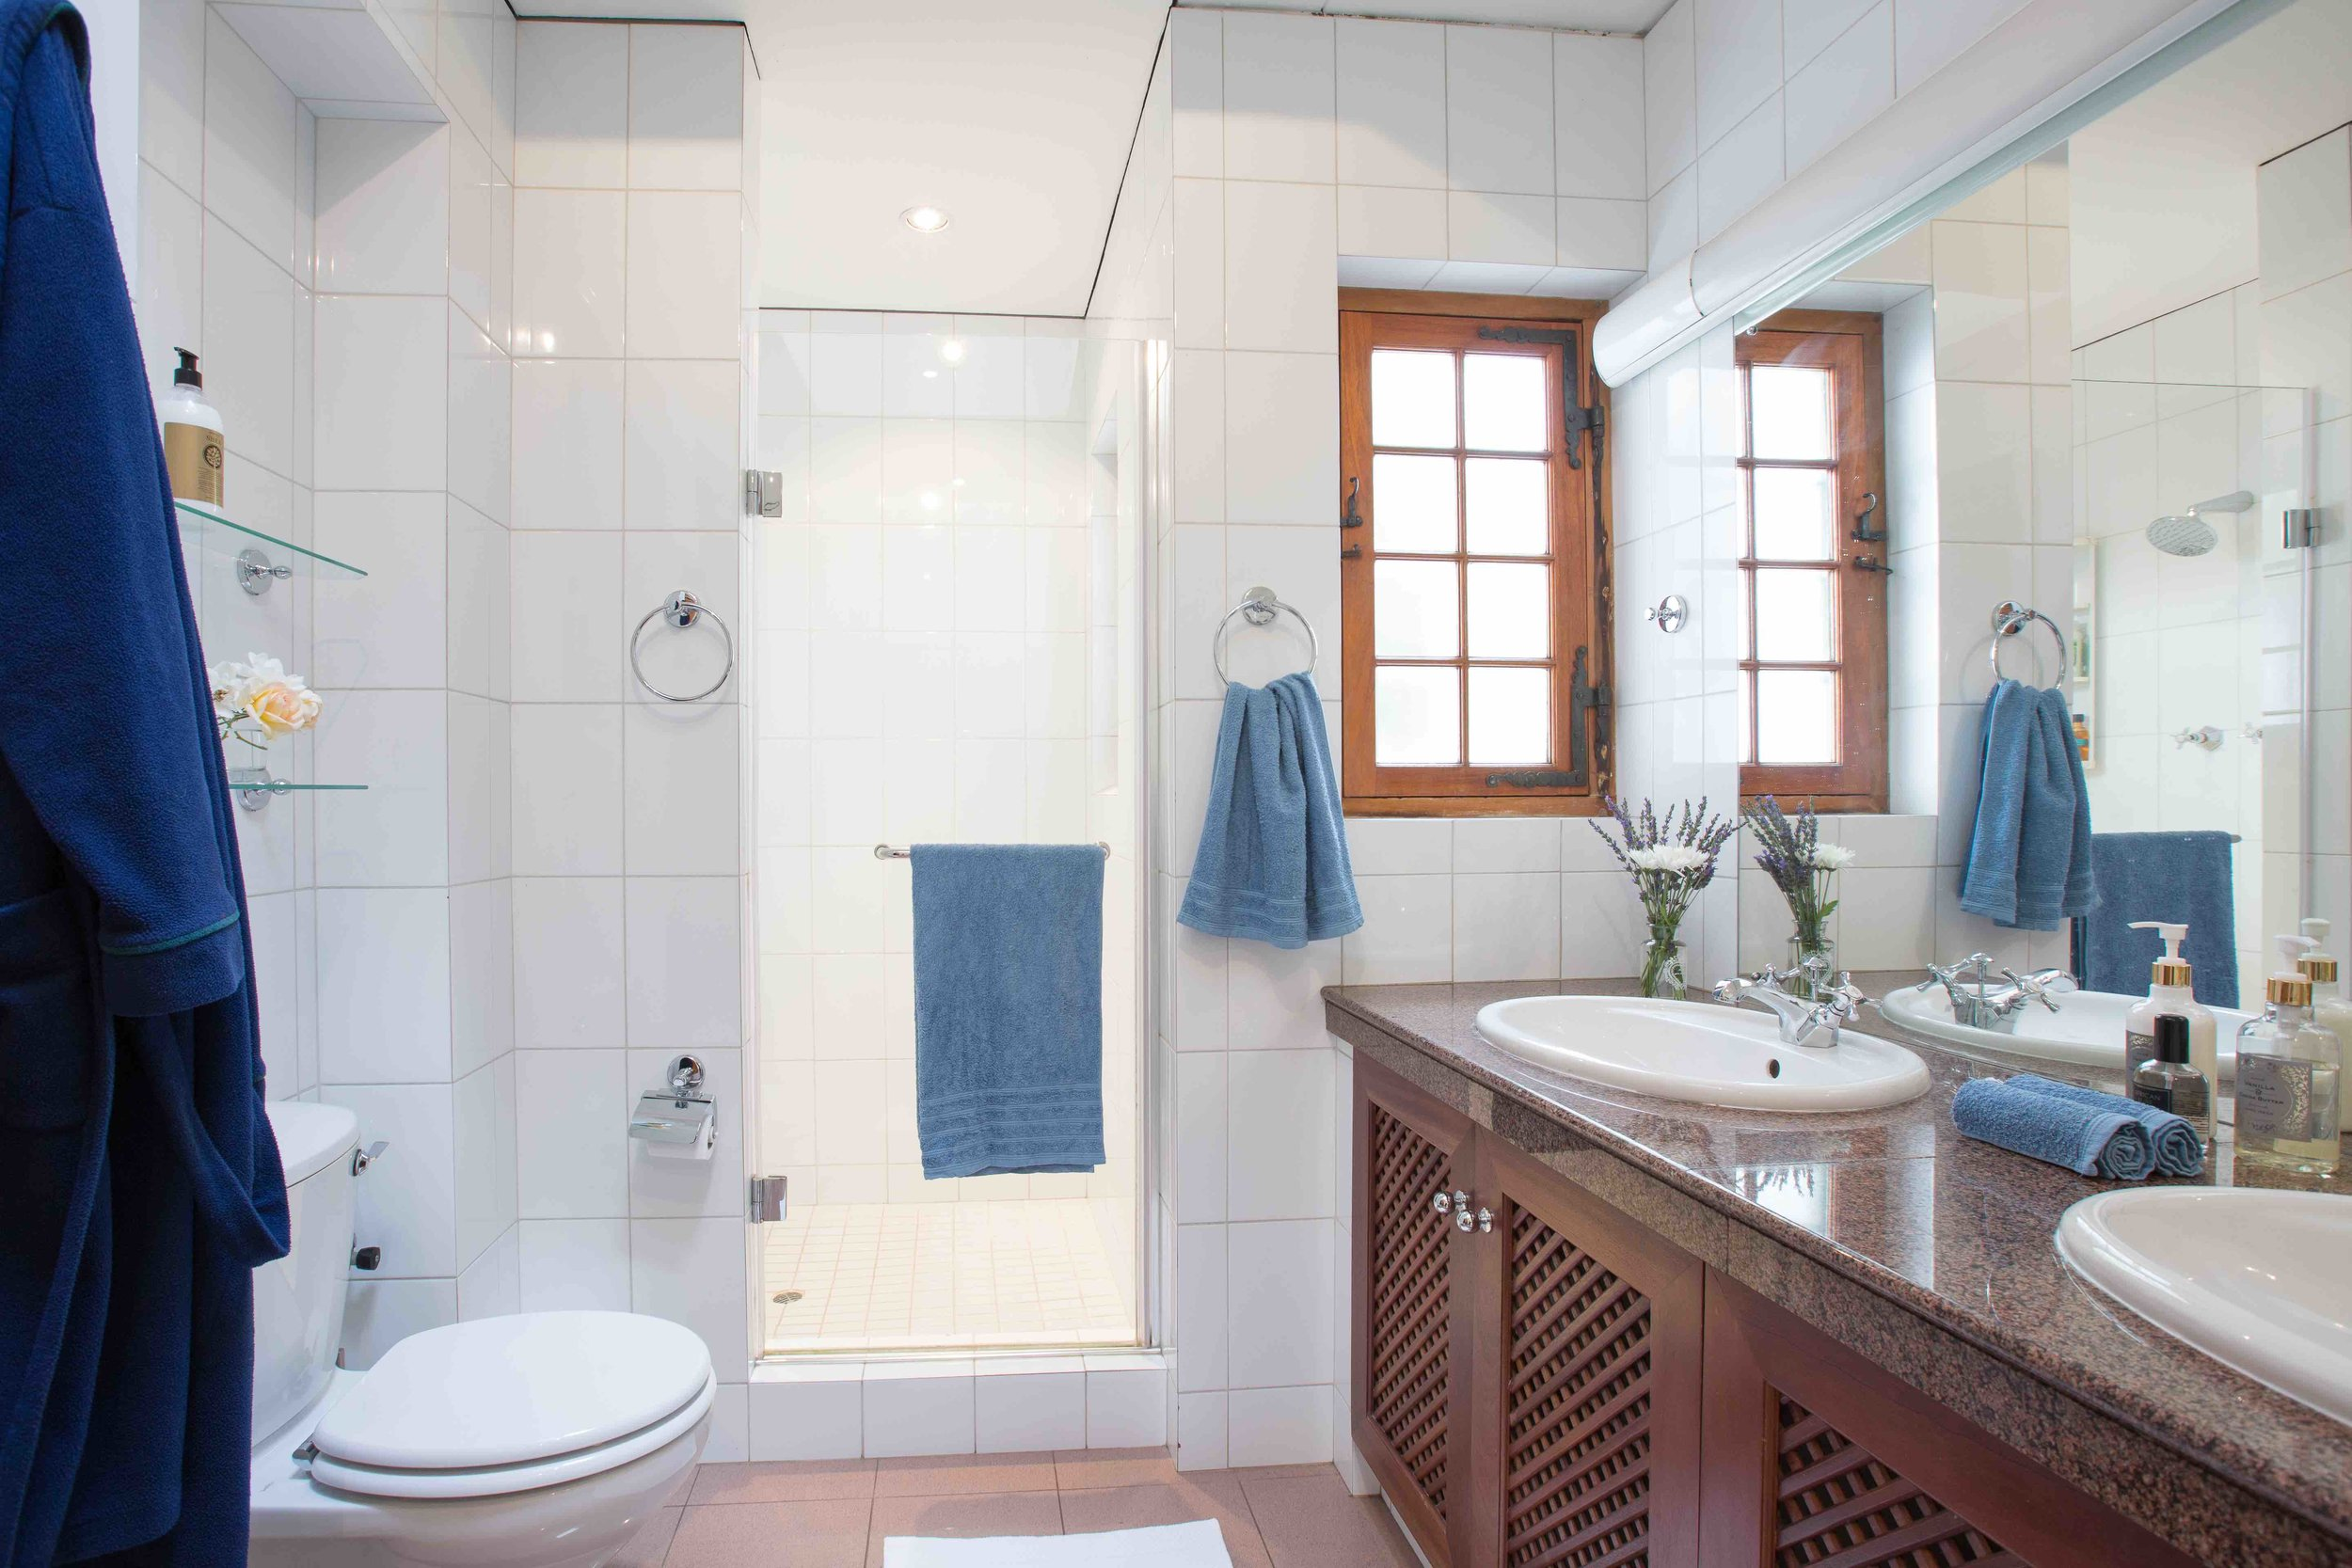 Large ensuite bathroom